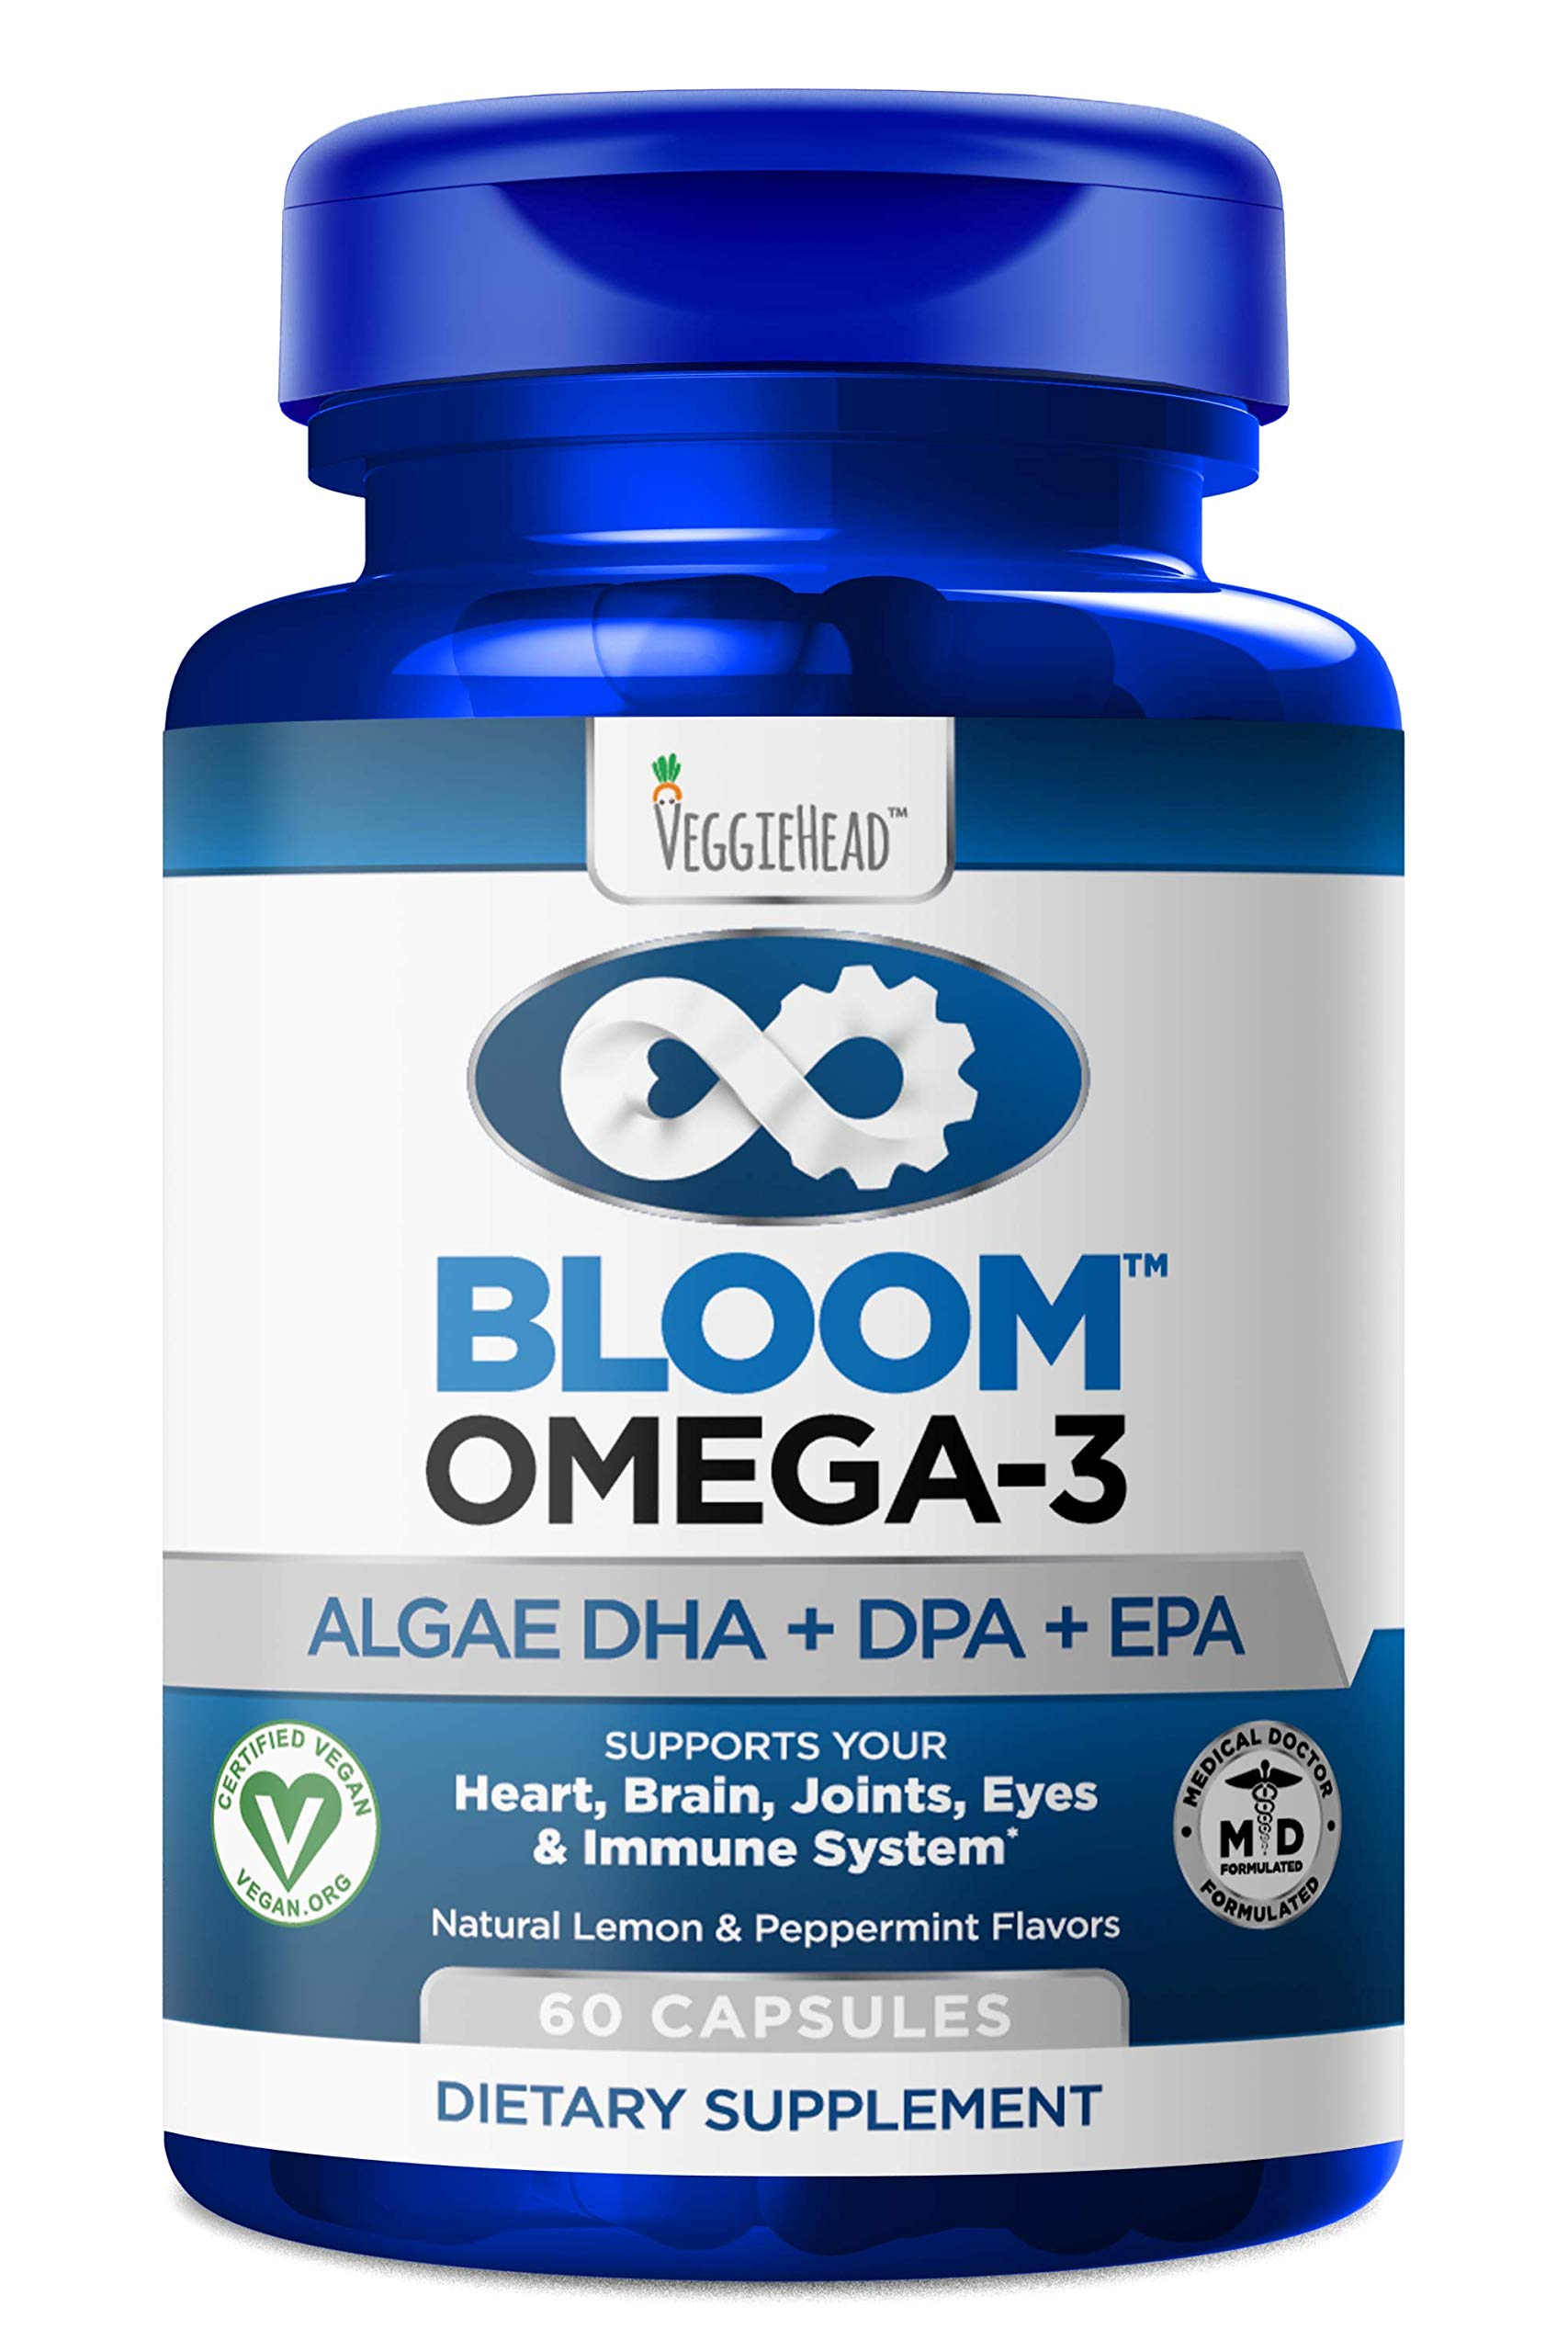 Vegan Omega 3 - Better Than Fish Oil! Plant Based, Algae DHA EPA DPA Supplement. Supports Heart, Brain, Joint, Prenatal & Immune System. No Carrageenan. Natural Lemon Flavor, 60 Vegetarian Capsules